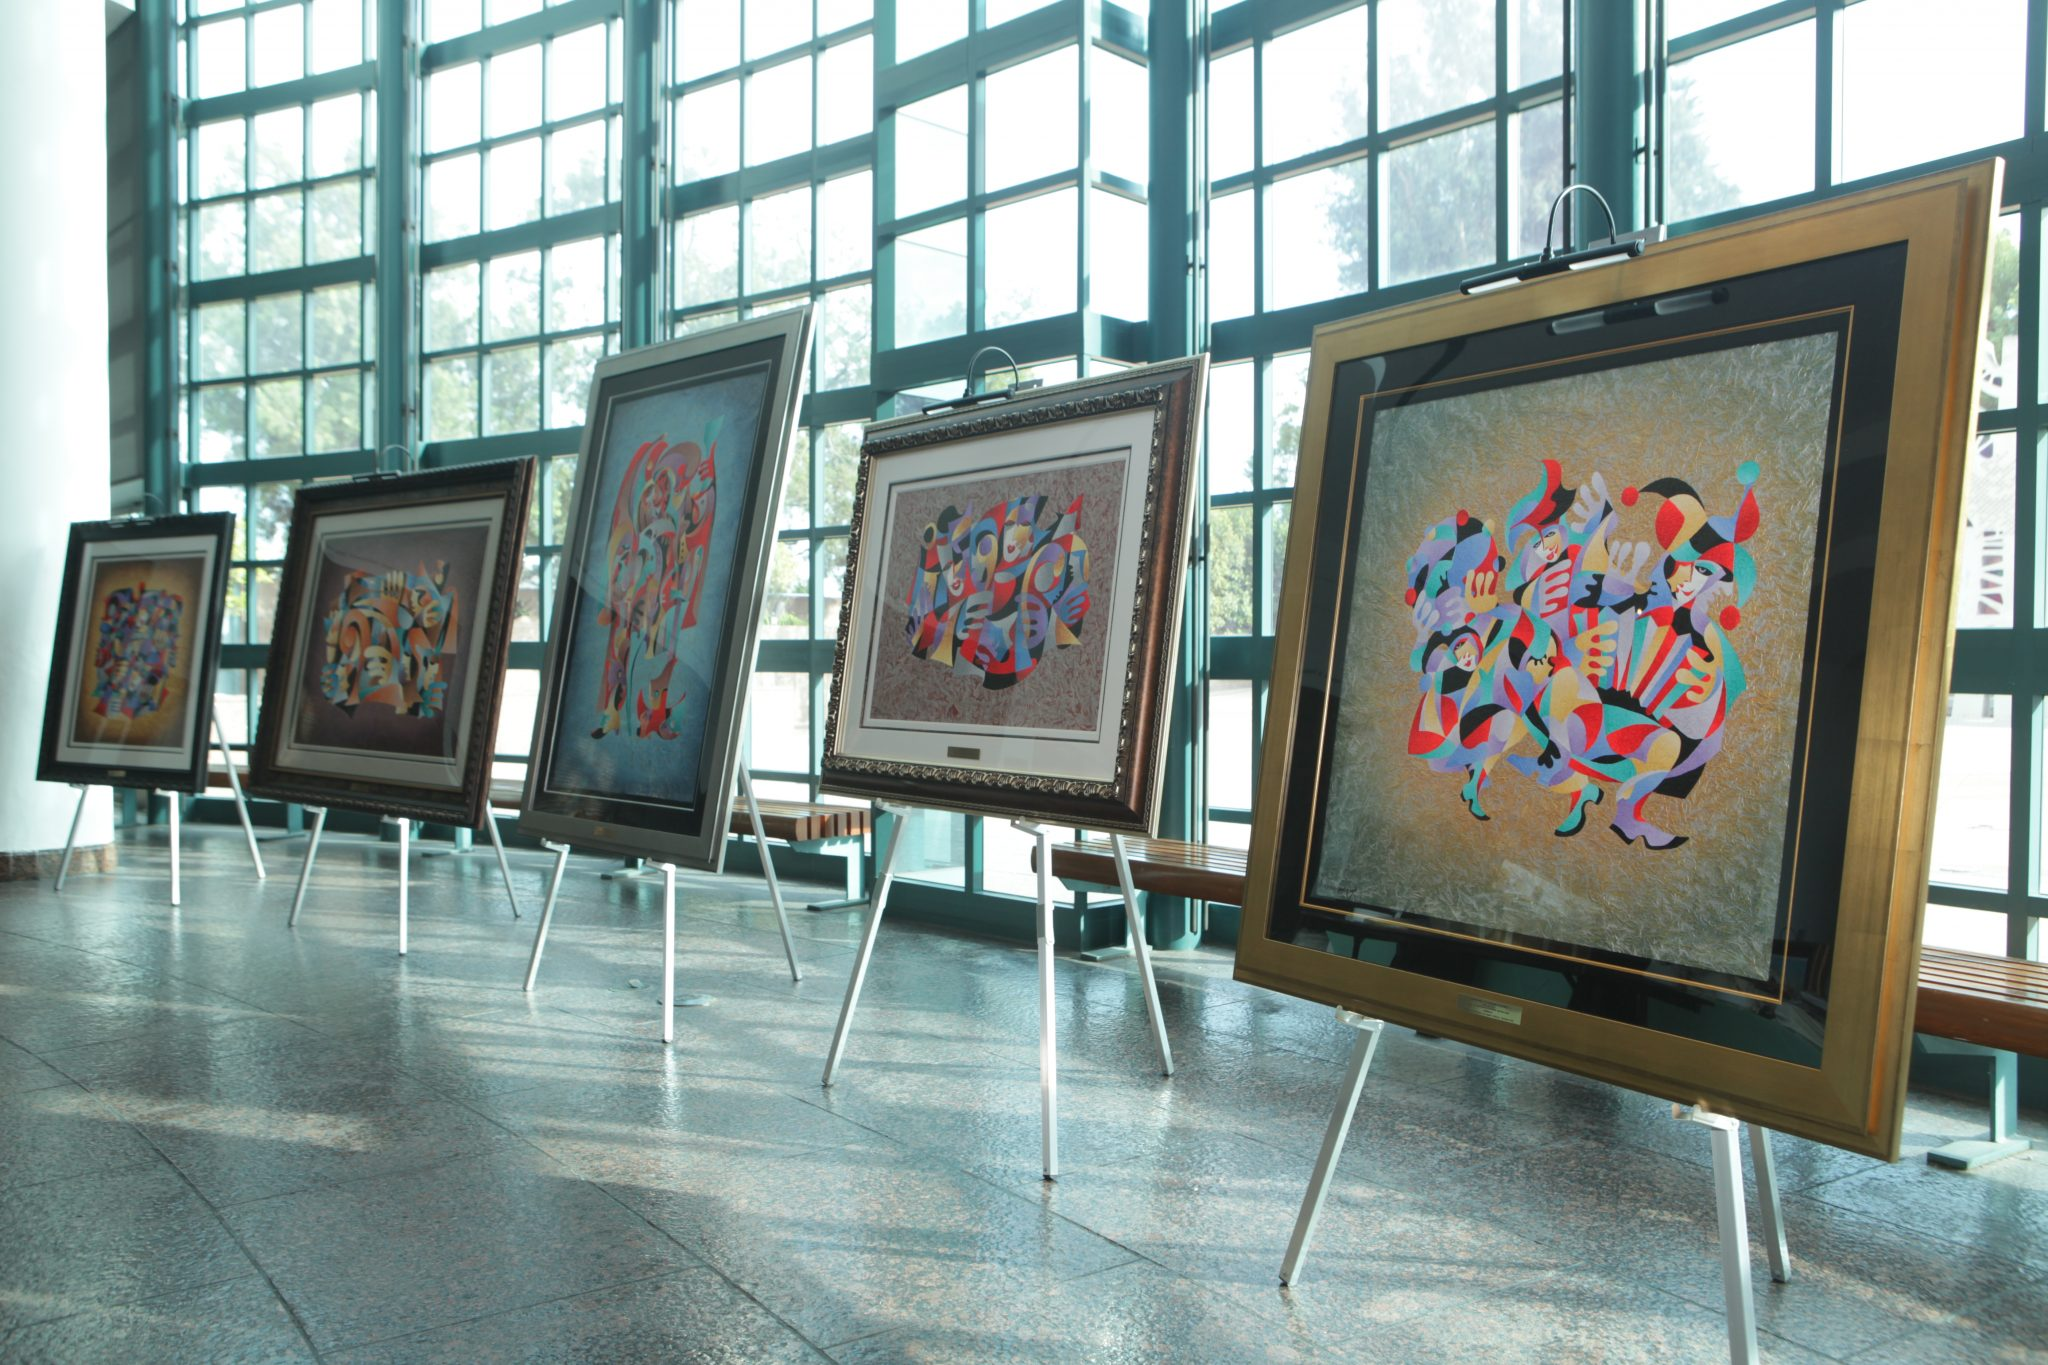 Antaole Krasnyansky artwork on display at Museum of Tolerance